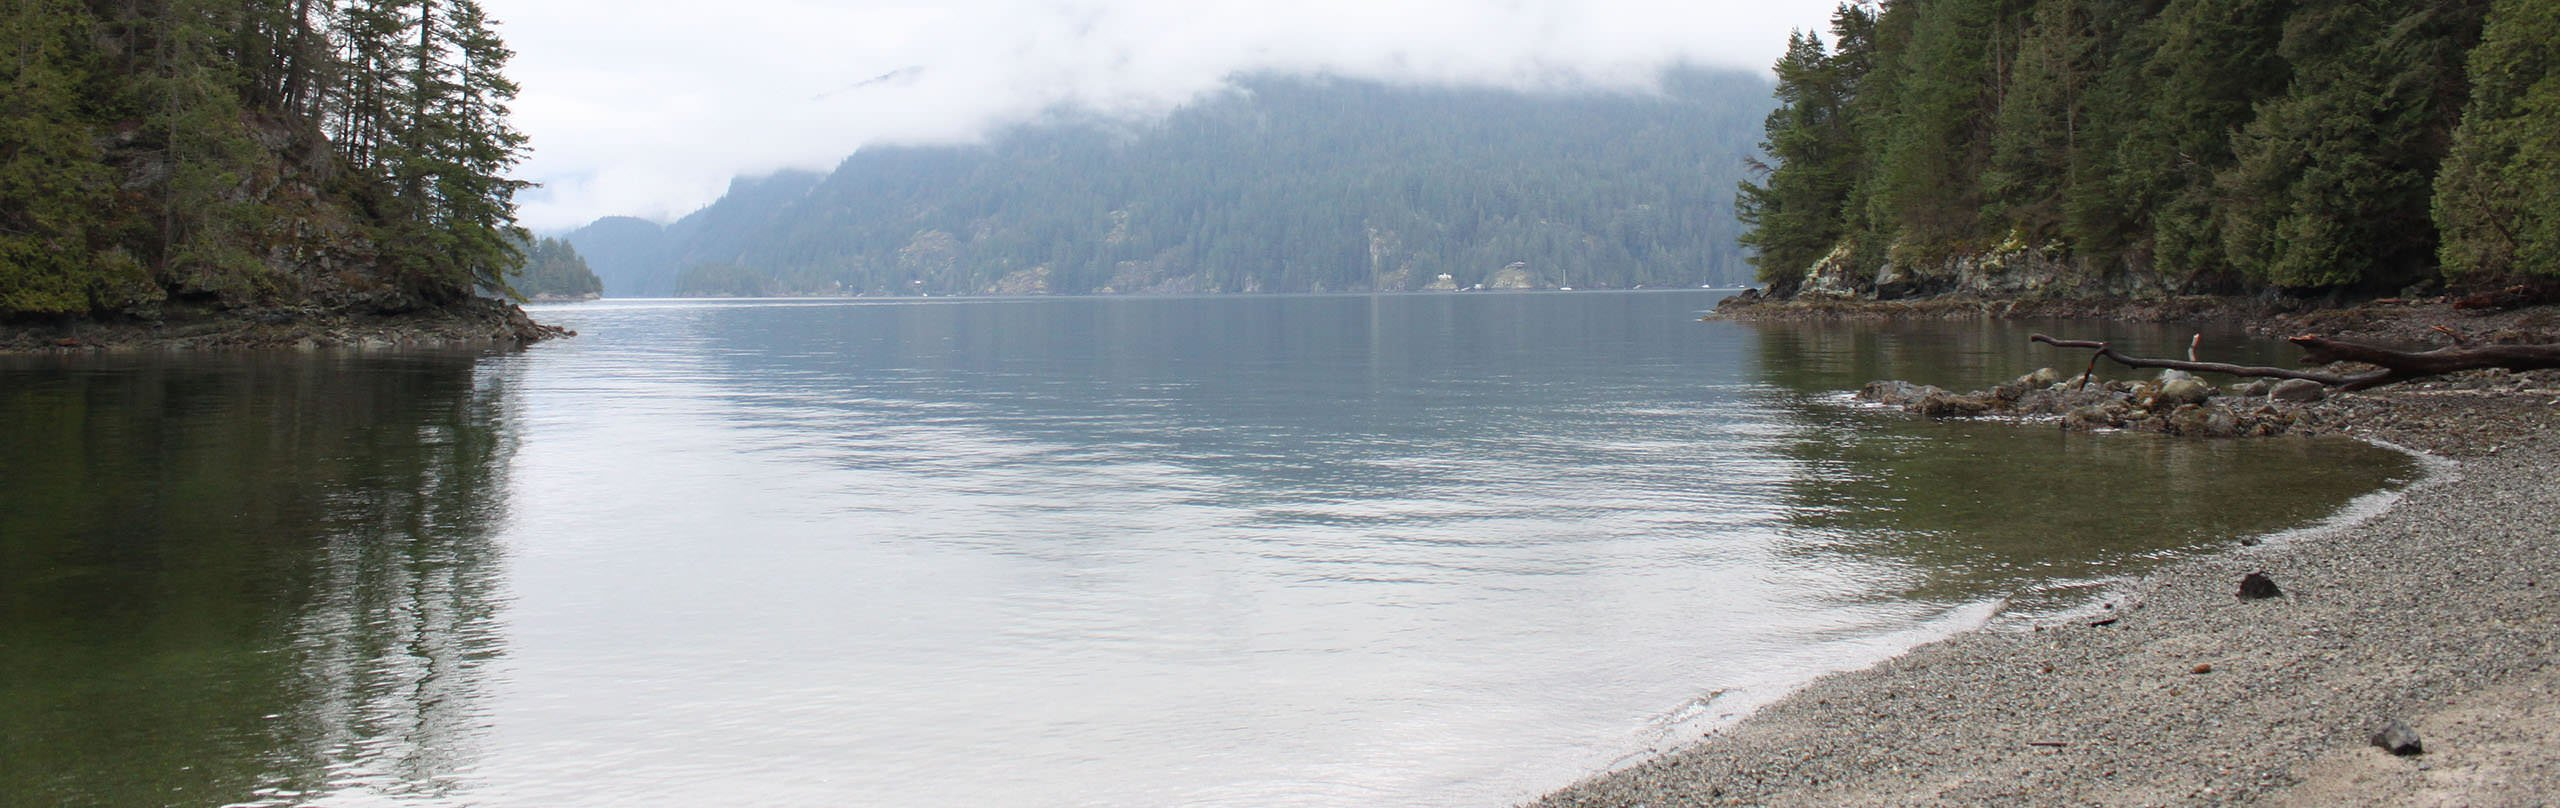 The view of Indian Arm from Jug Island Beach in Belcarra